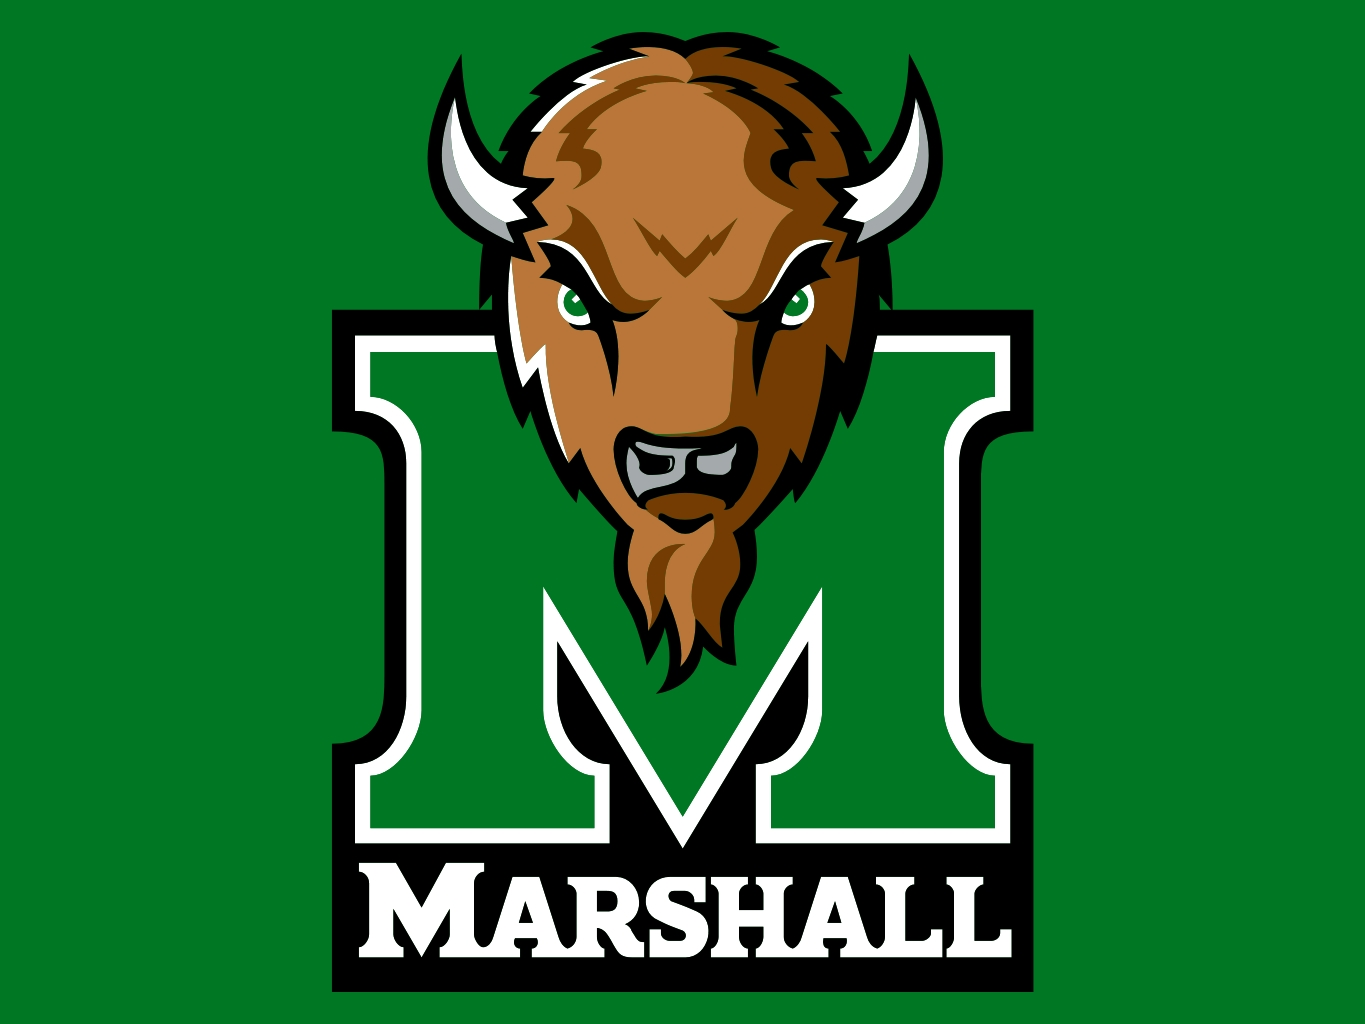 The Thundering Herd: Marshall's Rise by Gareth Evans